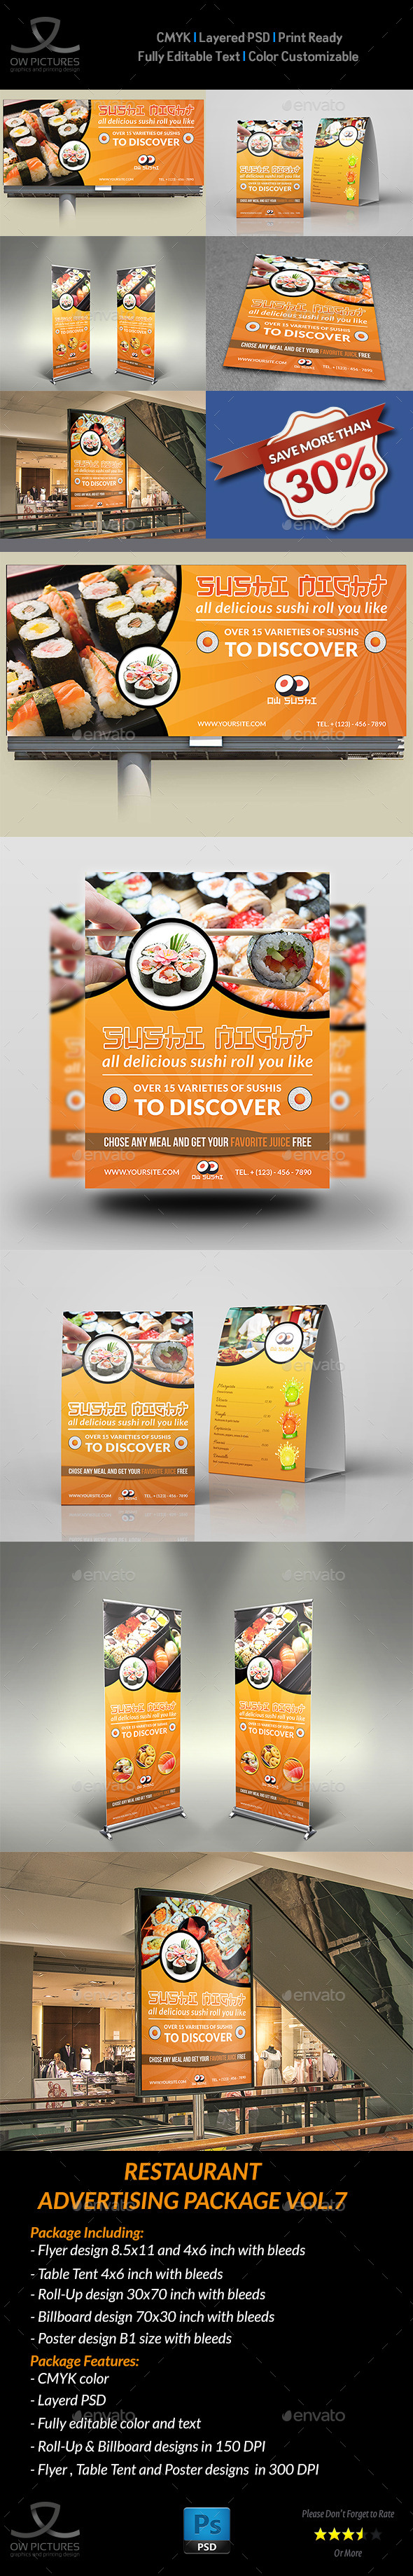 Restaurant Advertising Bundle Vol.7 - Signage Print Templates